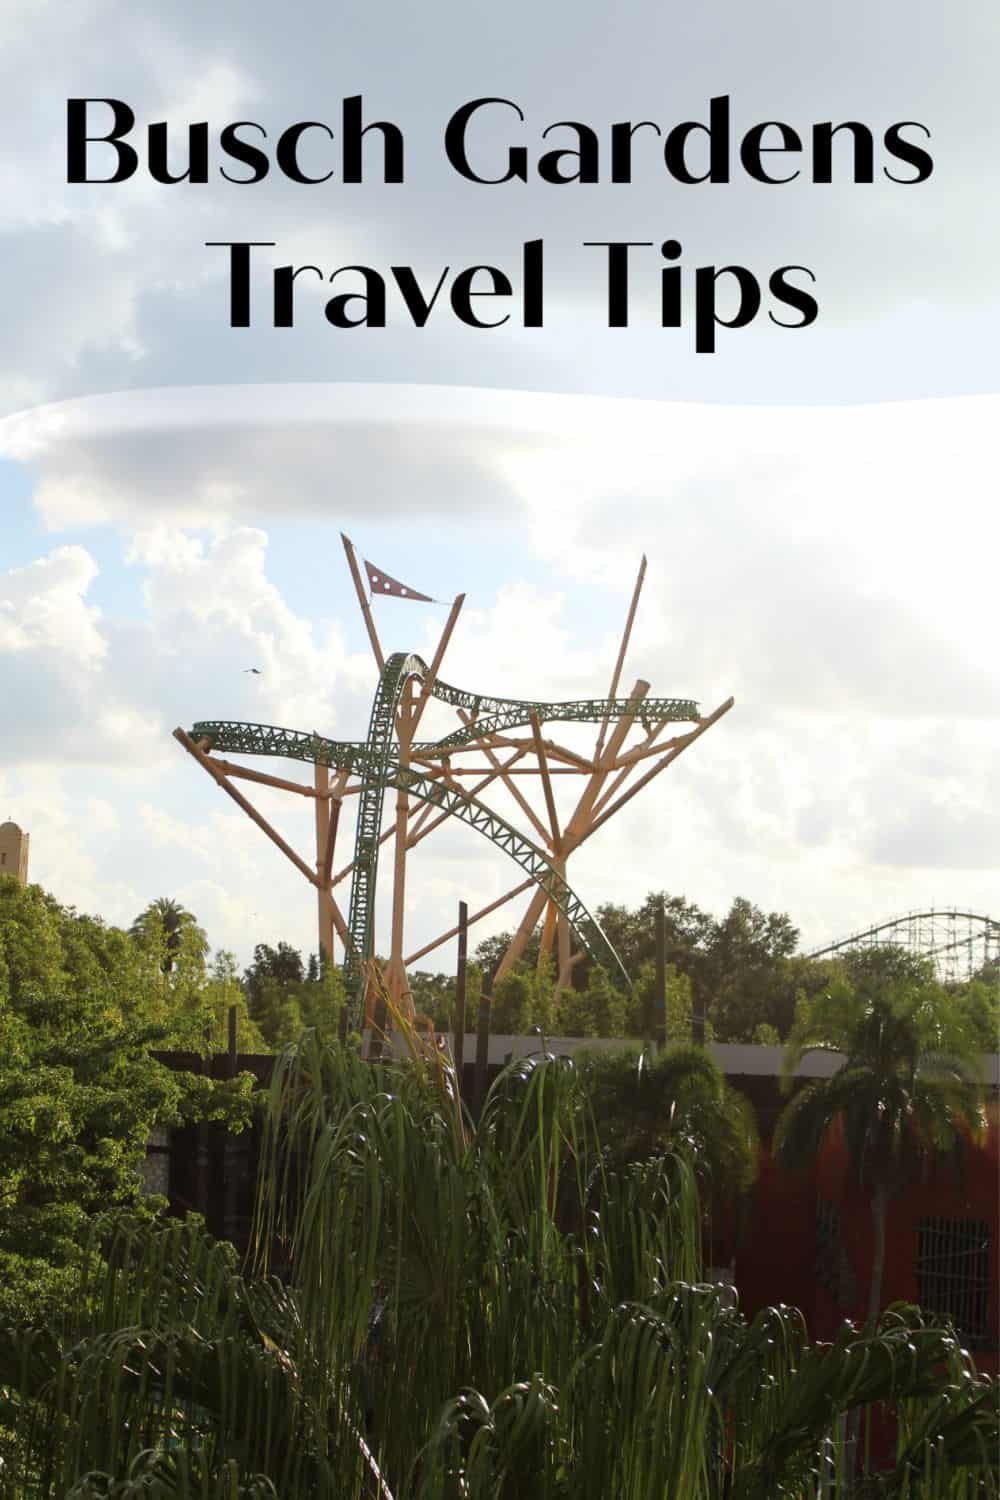 Busch Gardens Travel Tips